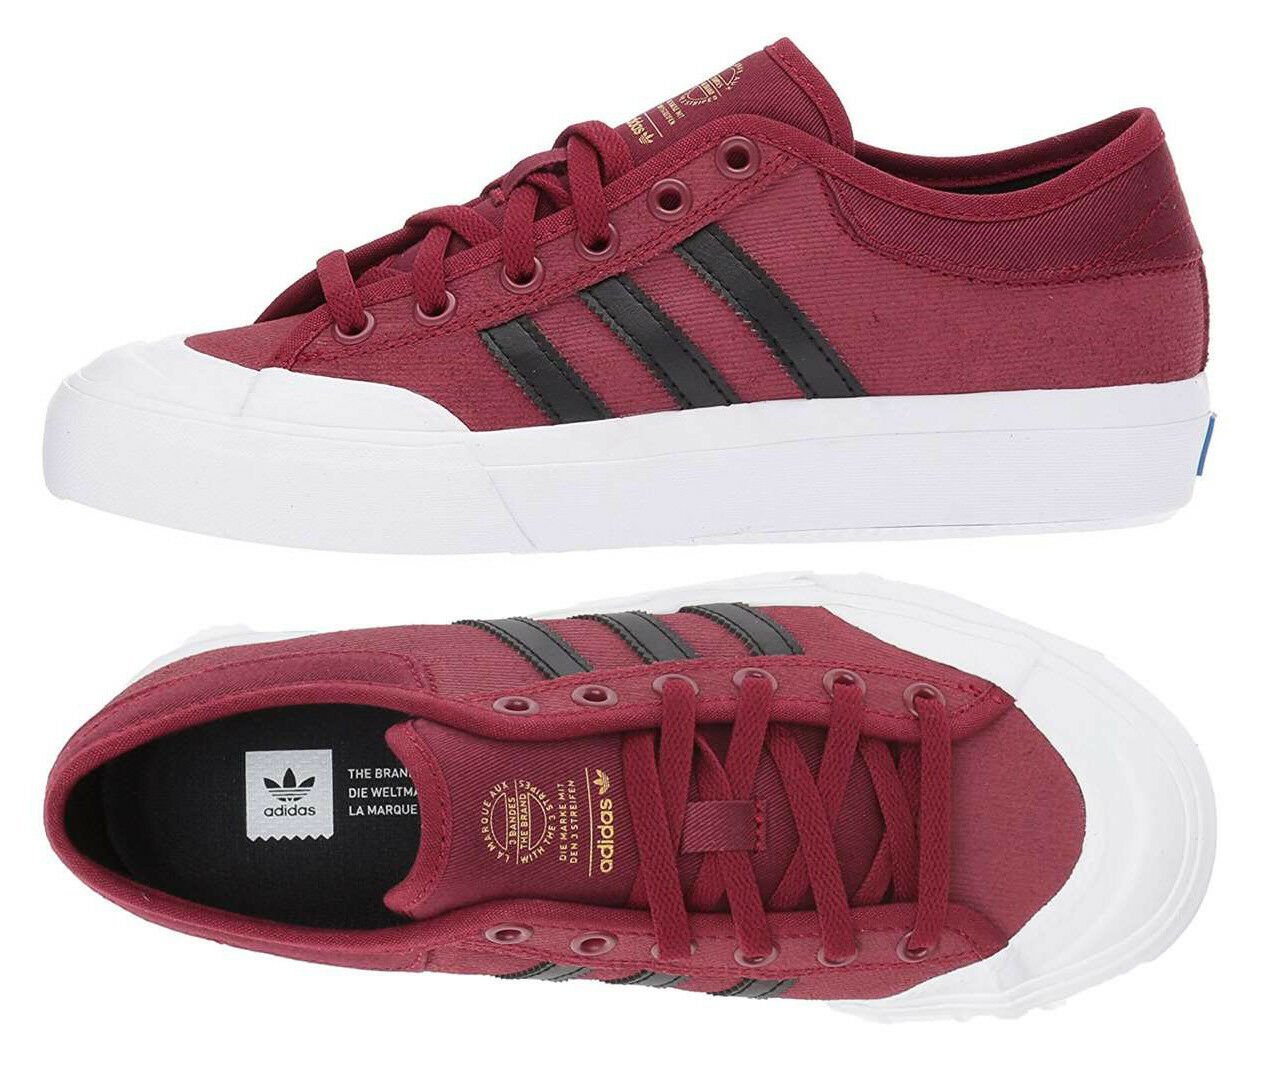 Adidas Originals Matchcourt Shoes Burgundy Canvas Sneakers ADIDAS BY3984 NEW Casual wild